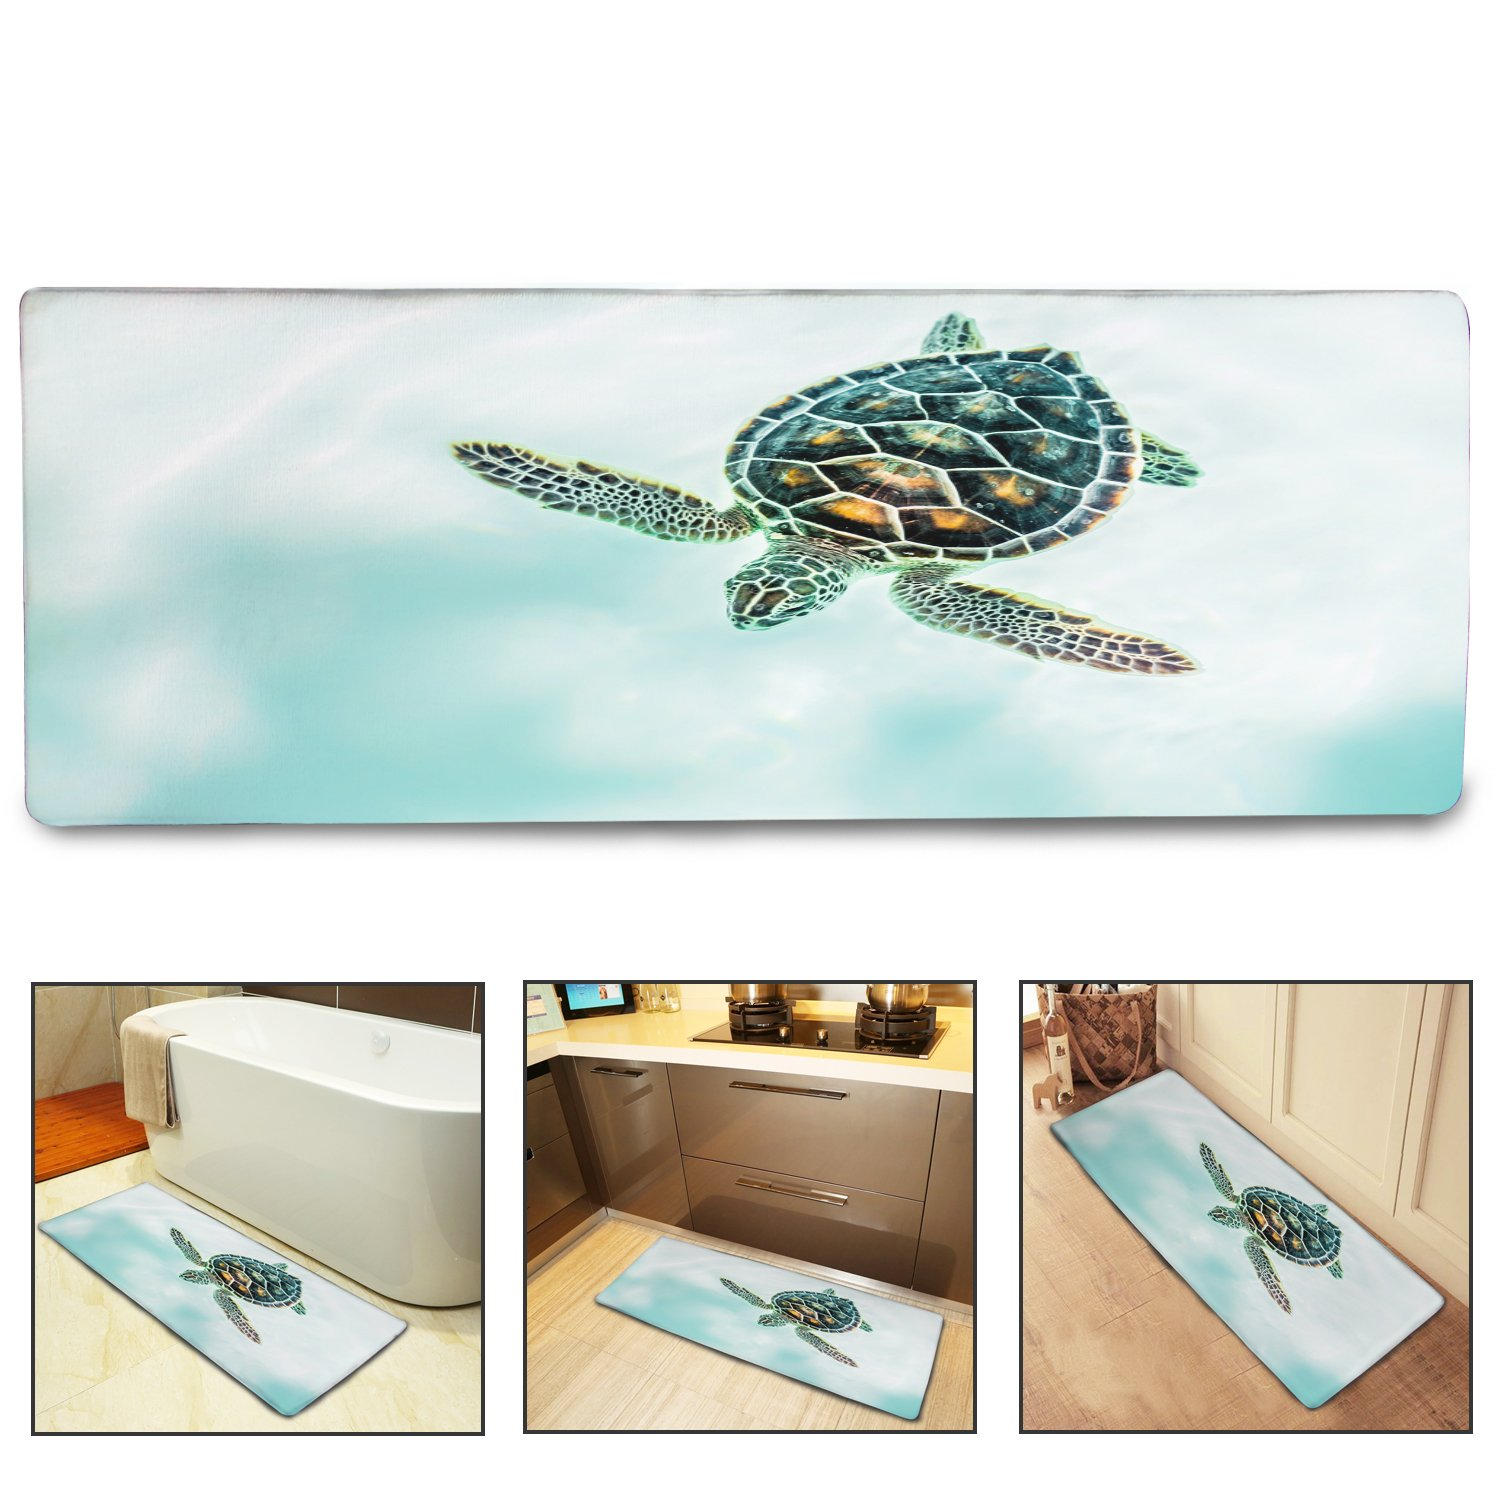 QIYI Bath Mat Rug Super Soft Non-Slip Machine Washable Quickly Drying Antibacterial,for Office Door Mat,Kitchen Dining Living Hallway Bathroom 16''x48''-Swimming Turtle